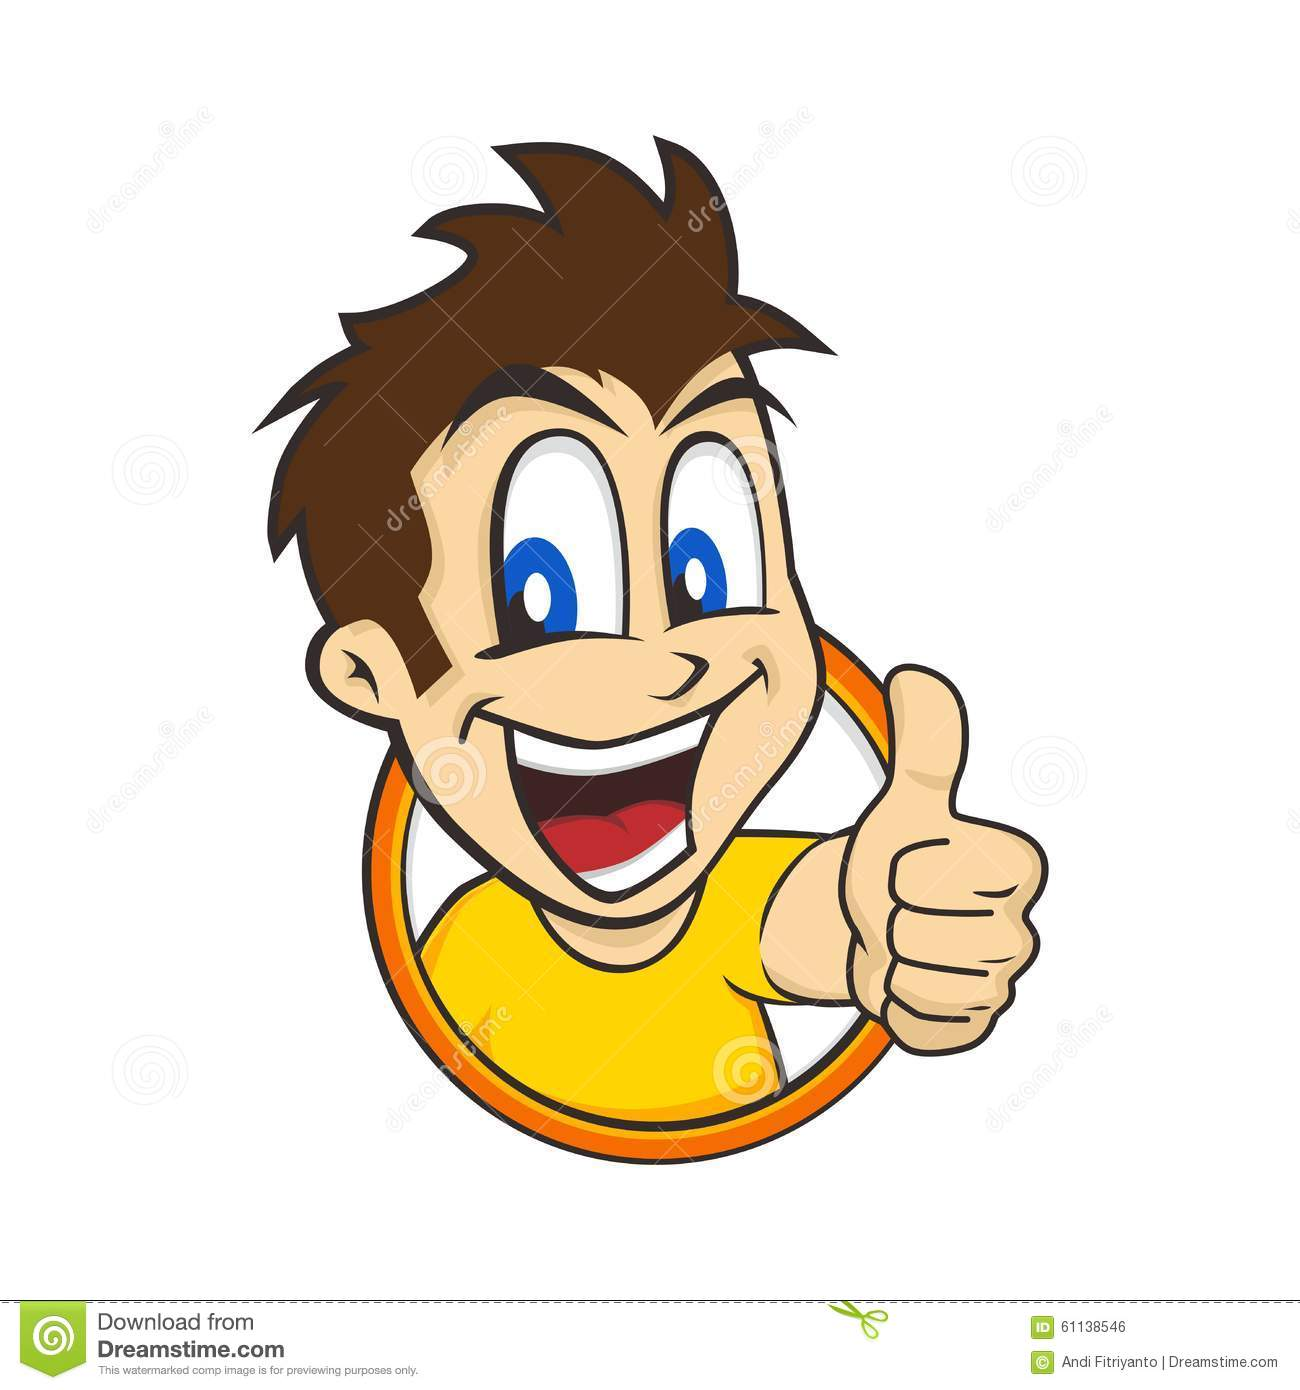 Cartoon Guy Thumbs Up Stock Vector - Image: 61138546